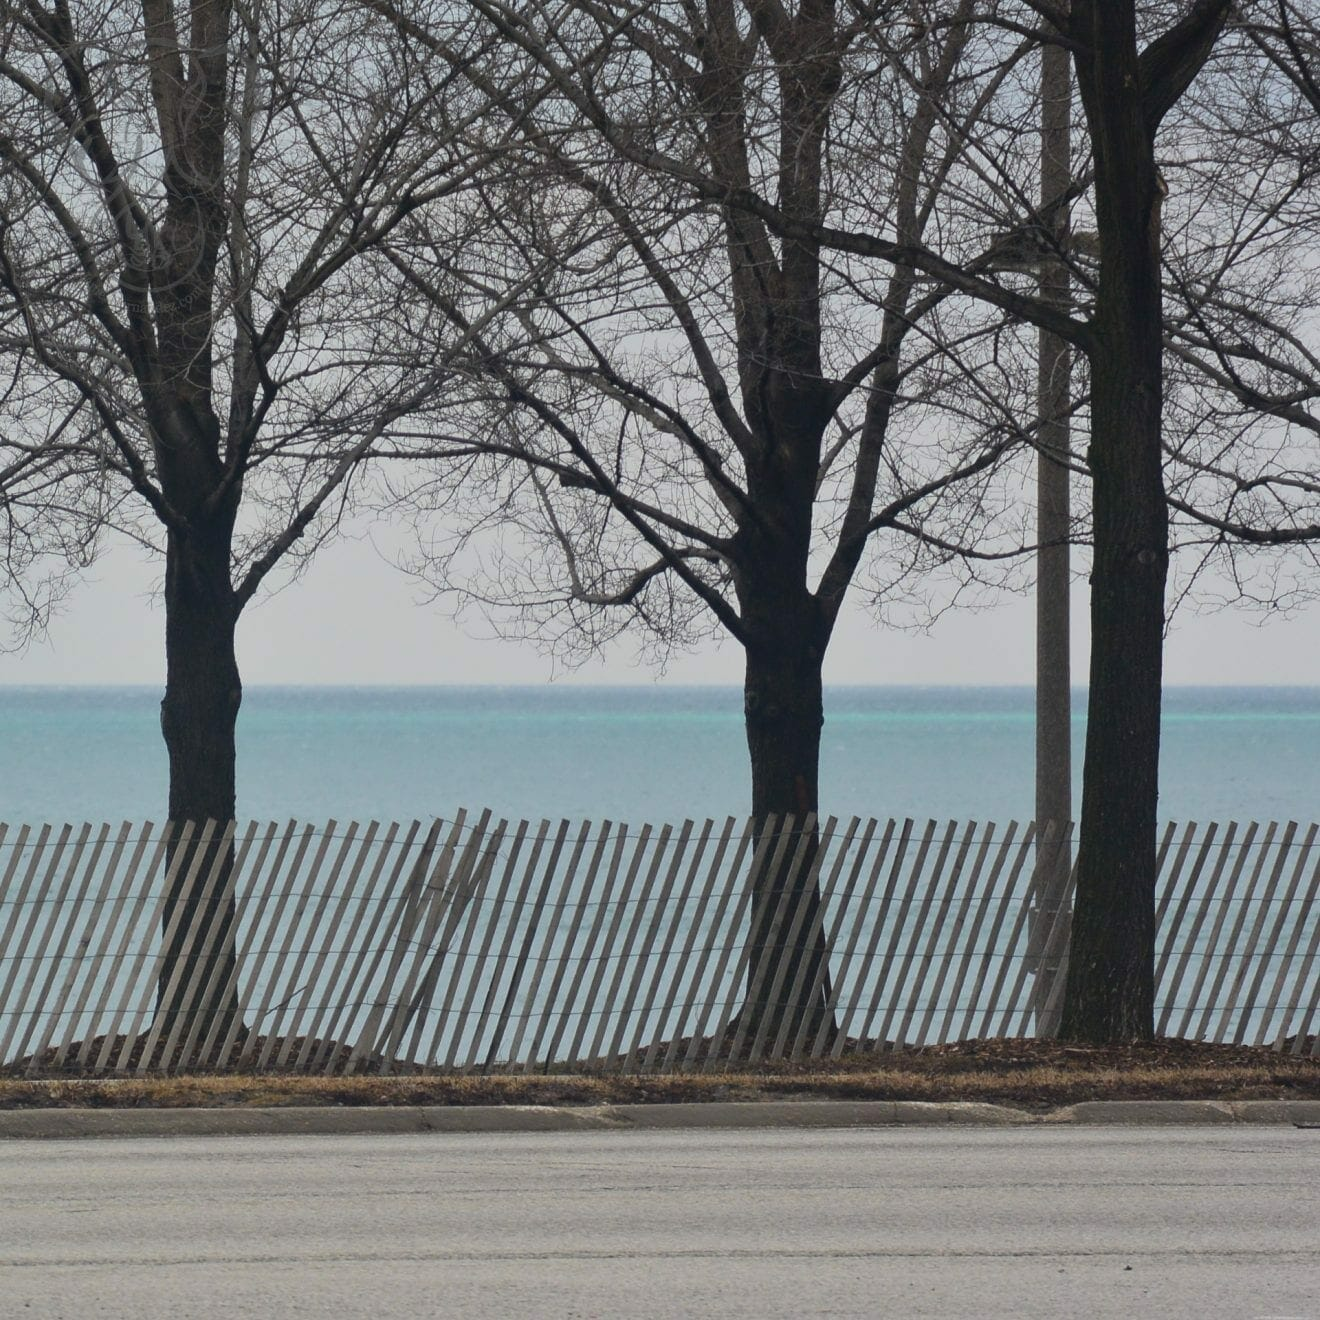 Trees along the shore of Lake Michigan, Chicago